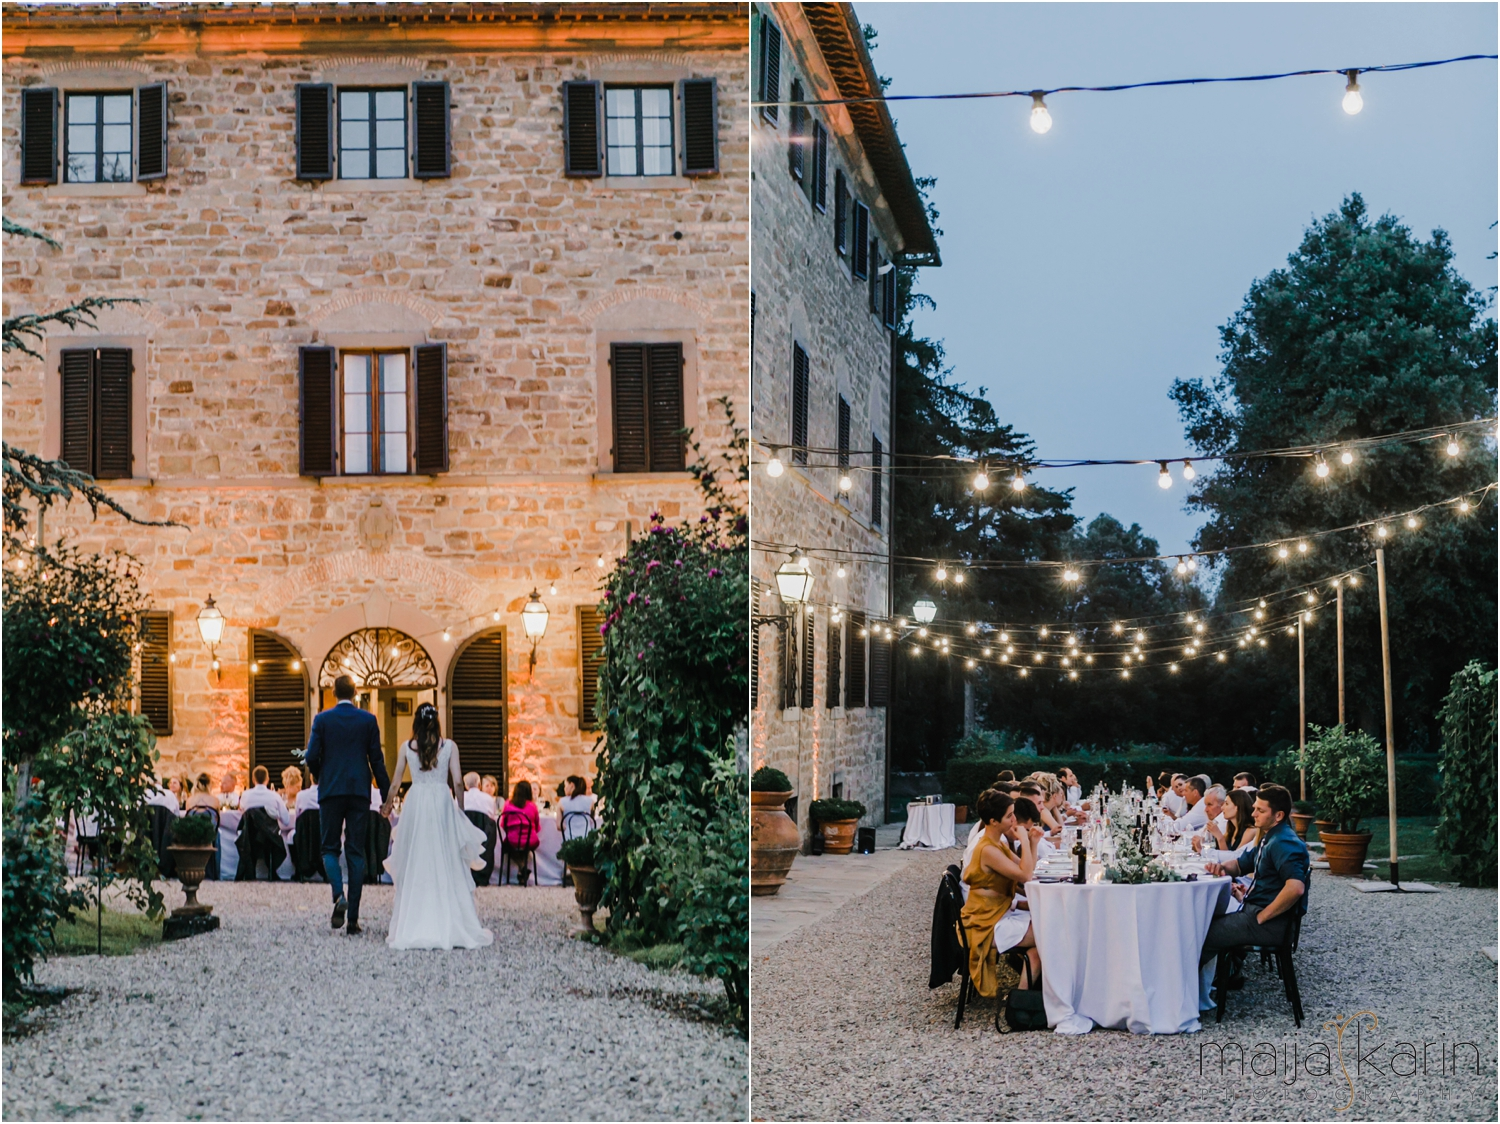 Castelvecchi-Tuscany-Wedding-Maija-Karin-Photography_0064.jpg